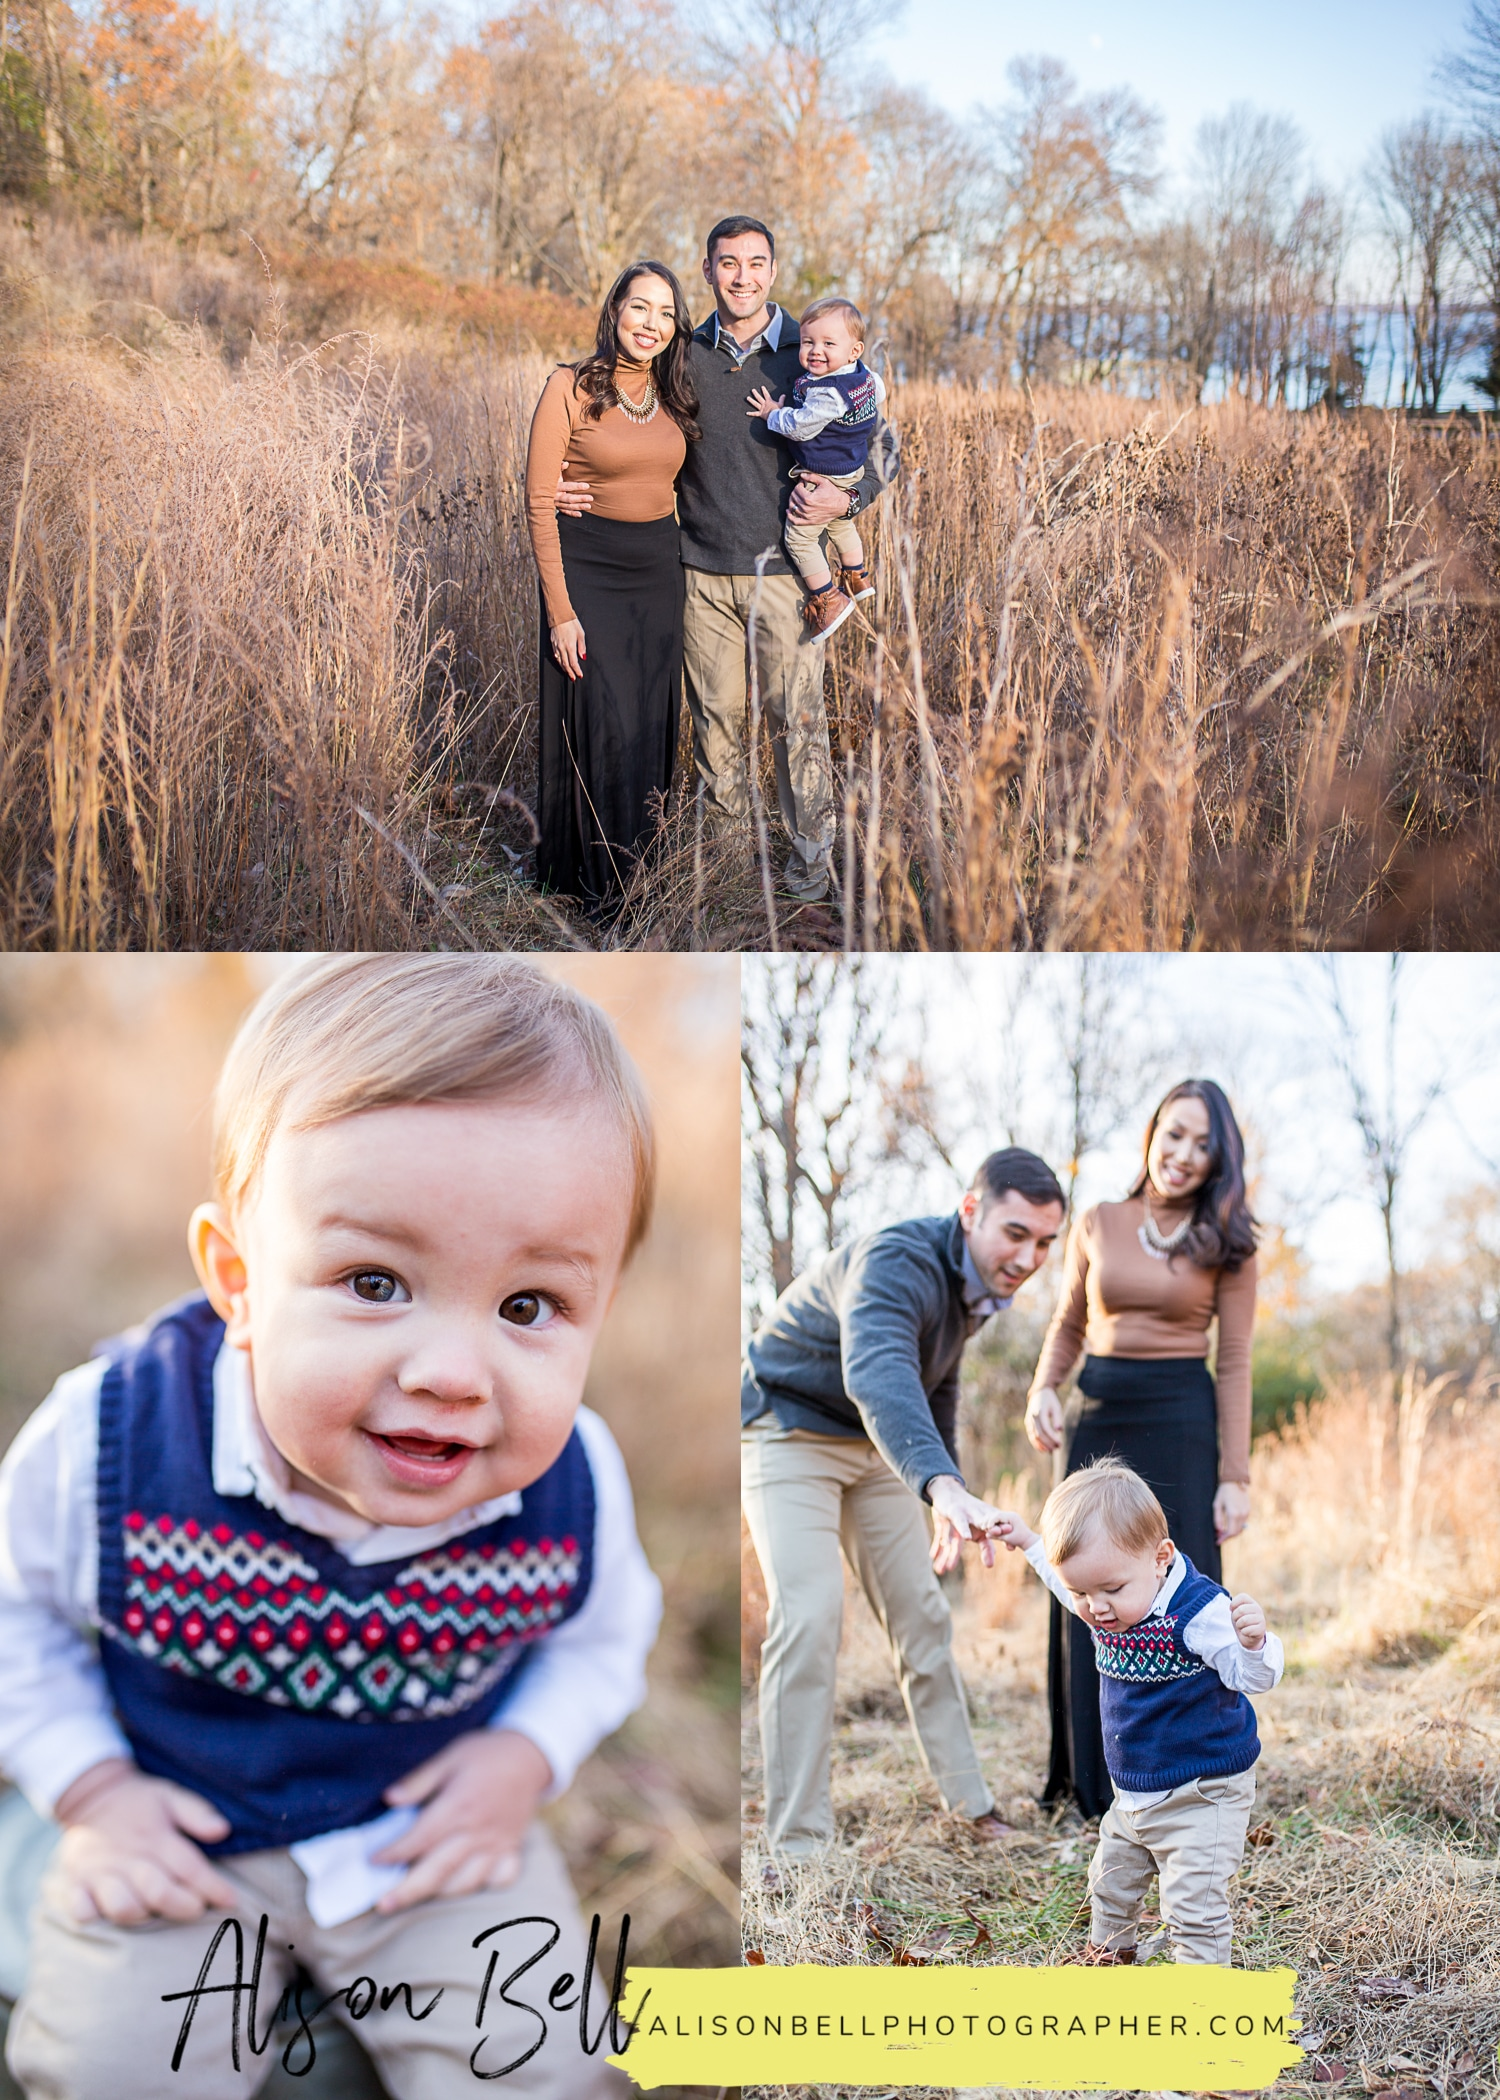 Family and baby photo session at Leesylvania State Park in Northern Virginia by Alison Bell, Photographer. Alisonbellphotographer.com